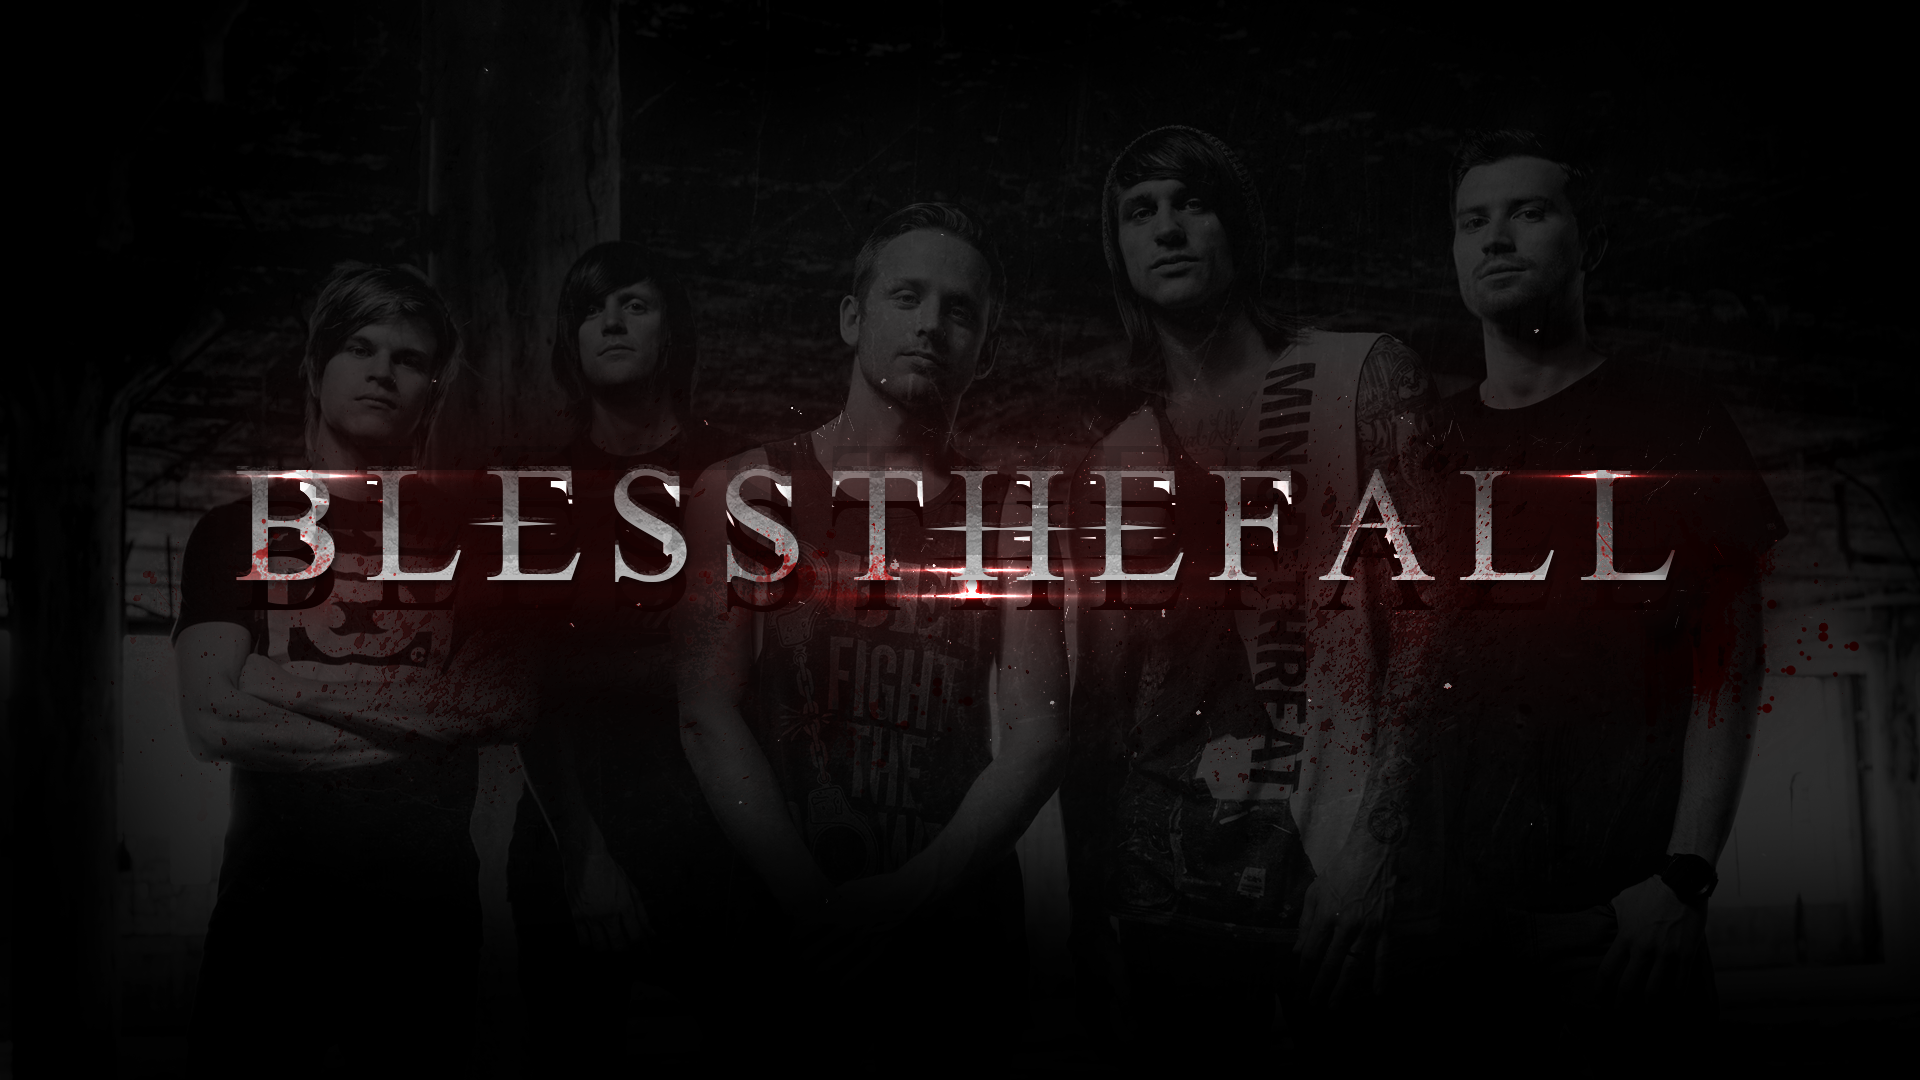 blessthefall 2015 wallpaper hd 1920 x 1080 by rooviieira